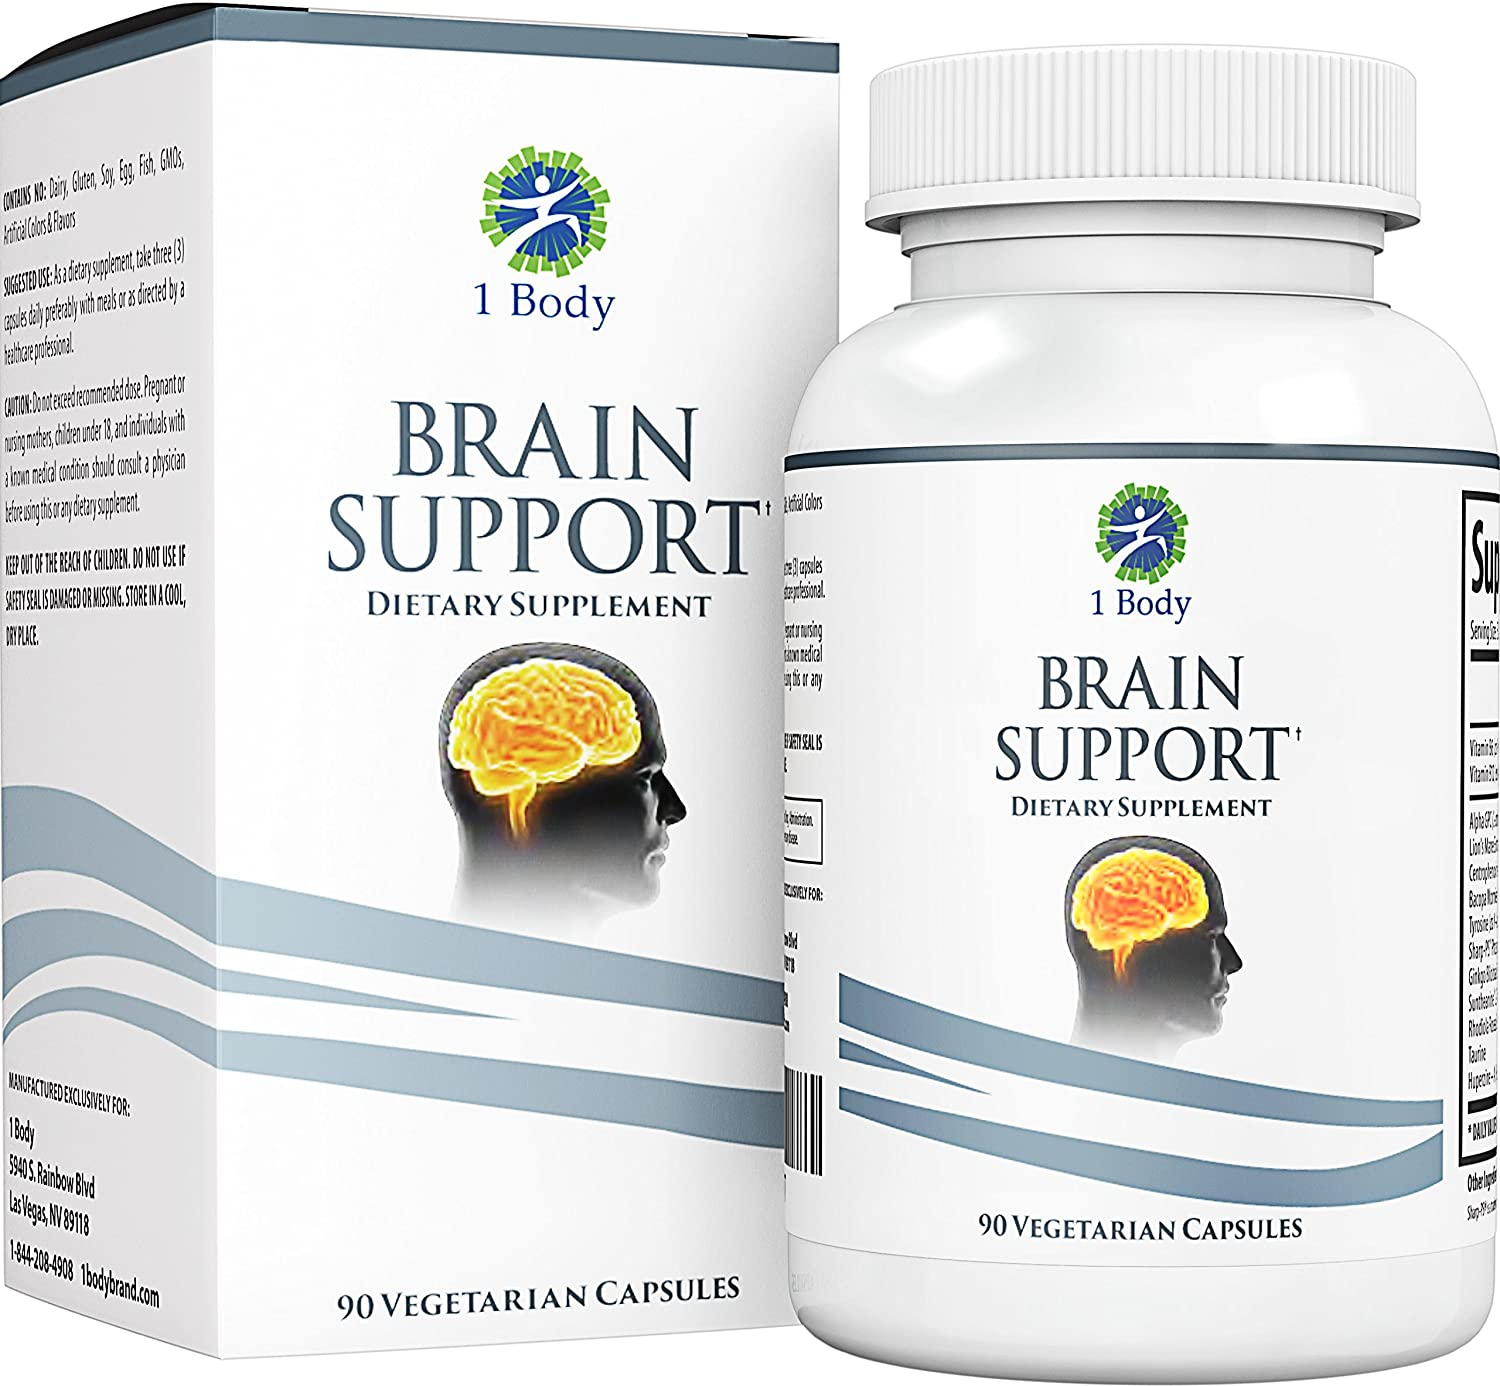 Support Healthy Brain Function with Nootropics, Improve Memory & Boost Focus - Alpha GPC, Lion's Mane Extract, Bacopa Monnieri, Phosphatidylserine, Ginkgo Biloba, Rhodiola Rosea, Huperzine A